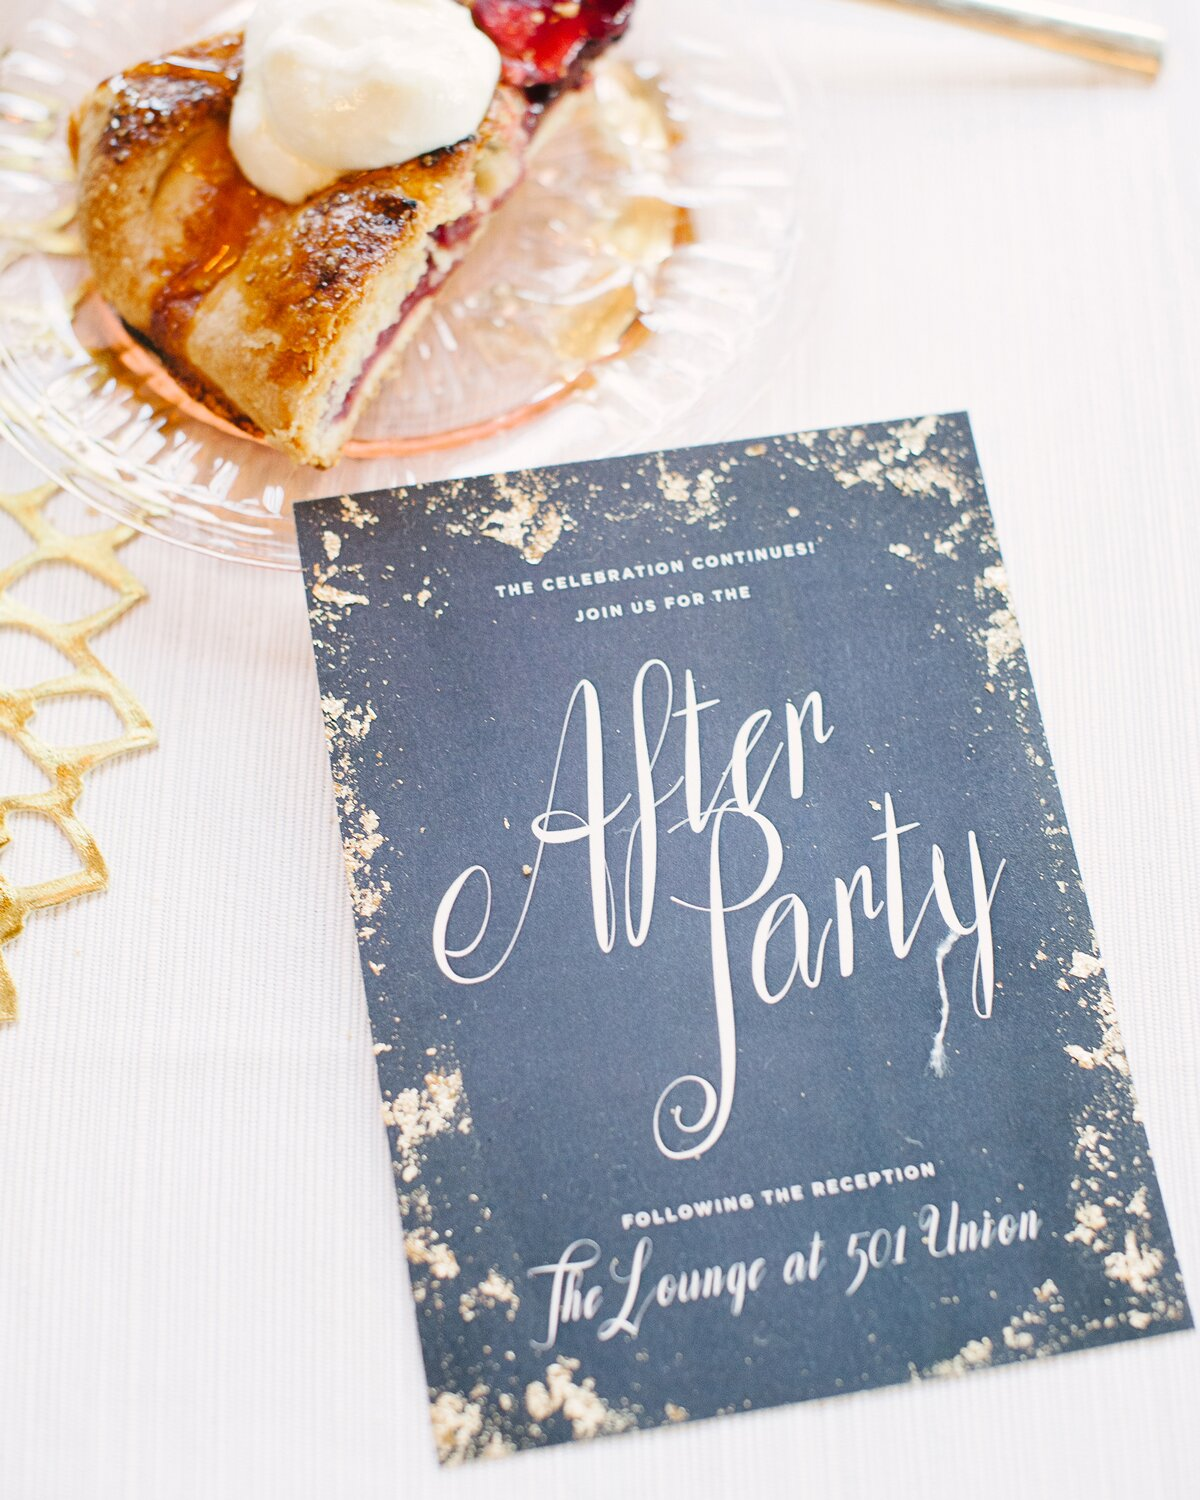 27 After-Party Ideas That Will Keep the Party Going | Martha ...